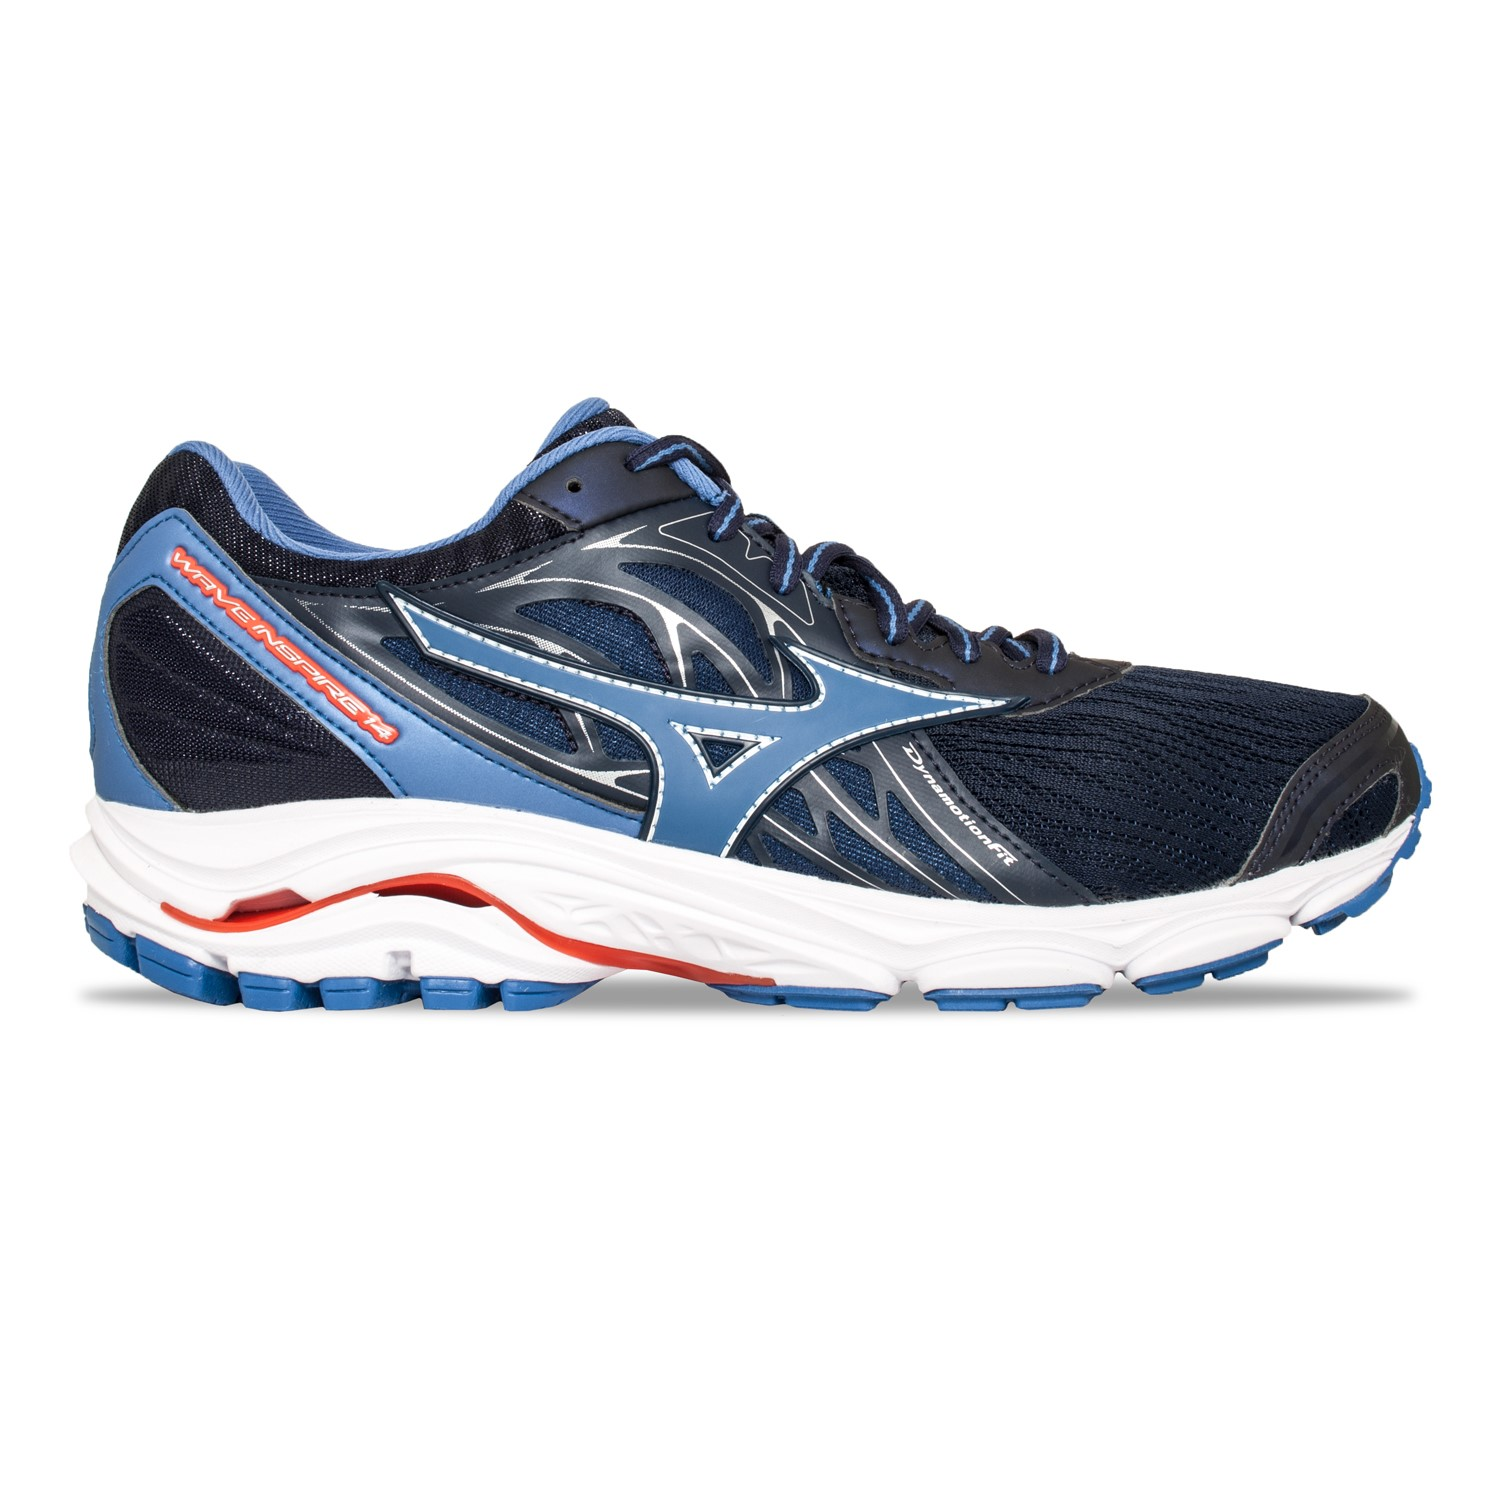 quality design 79ead b9b5e Mizuno Wave Inspire 14 - Mens Running Shoes - Evening Blue Delft Tomato Red